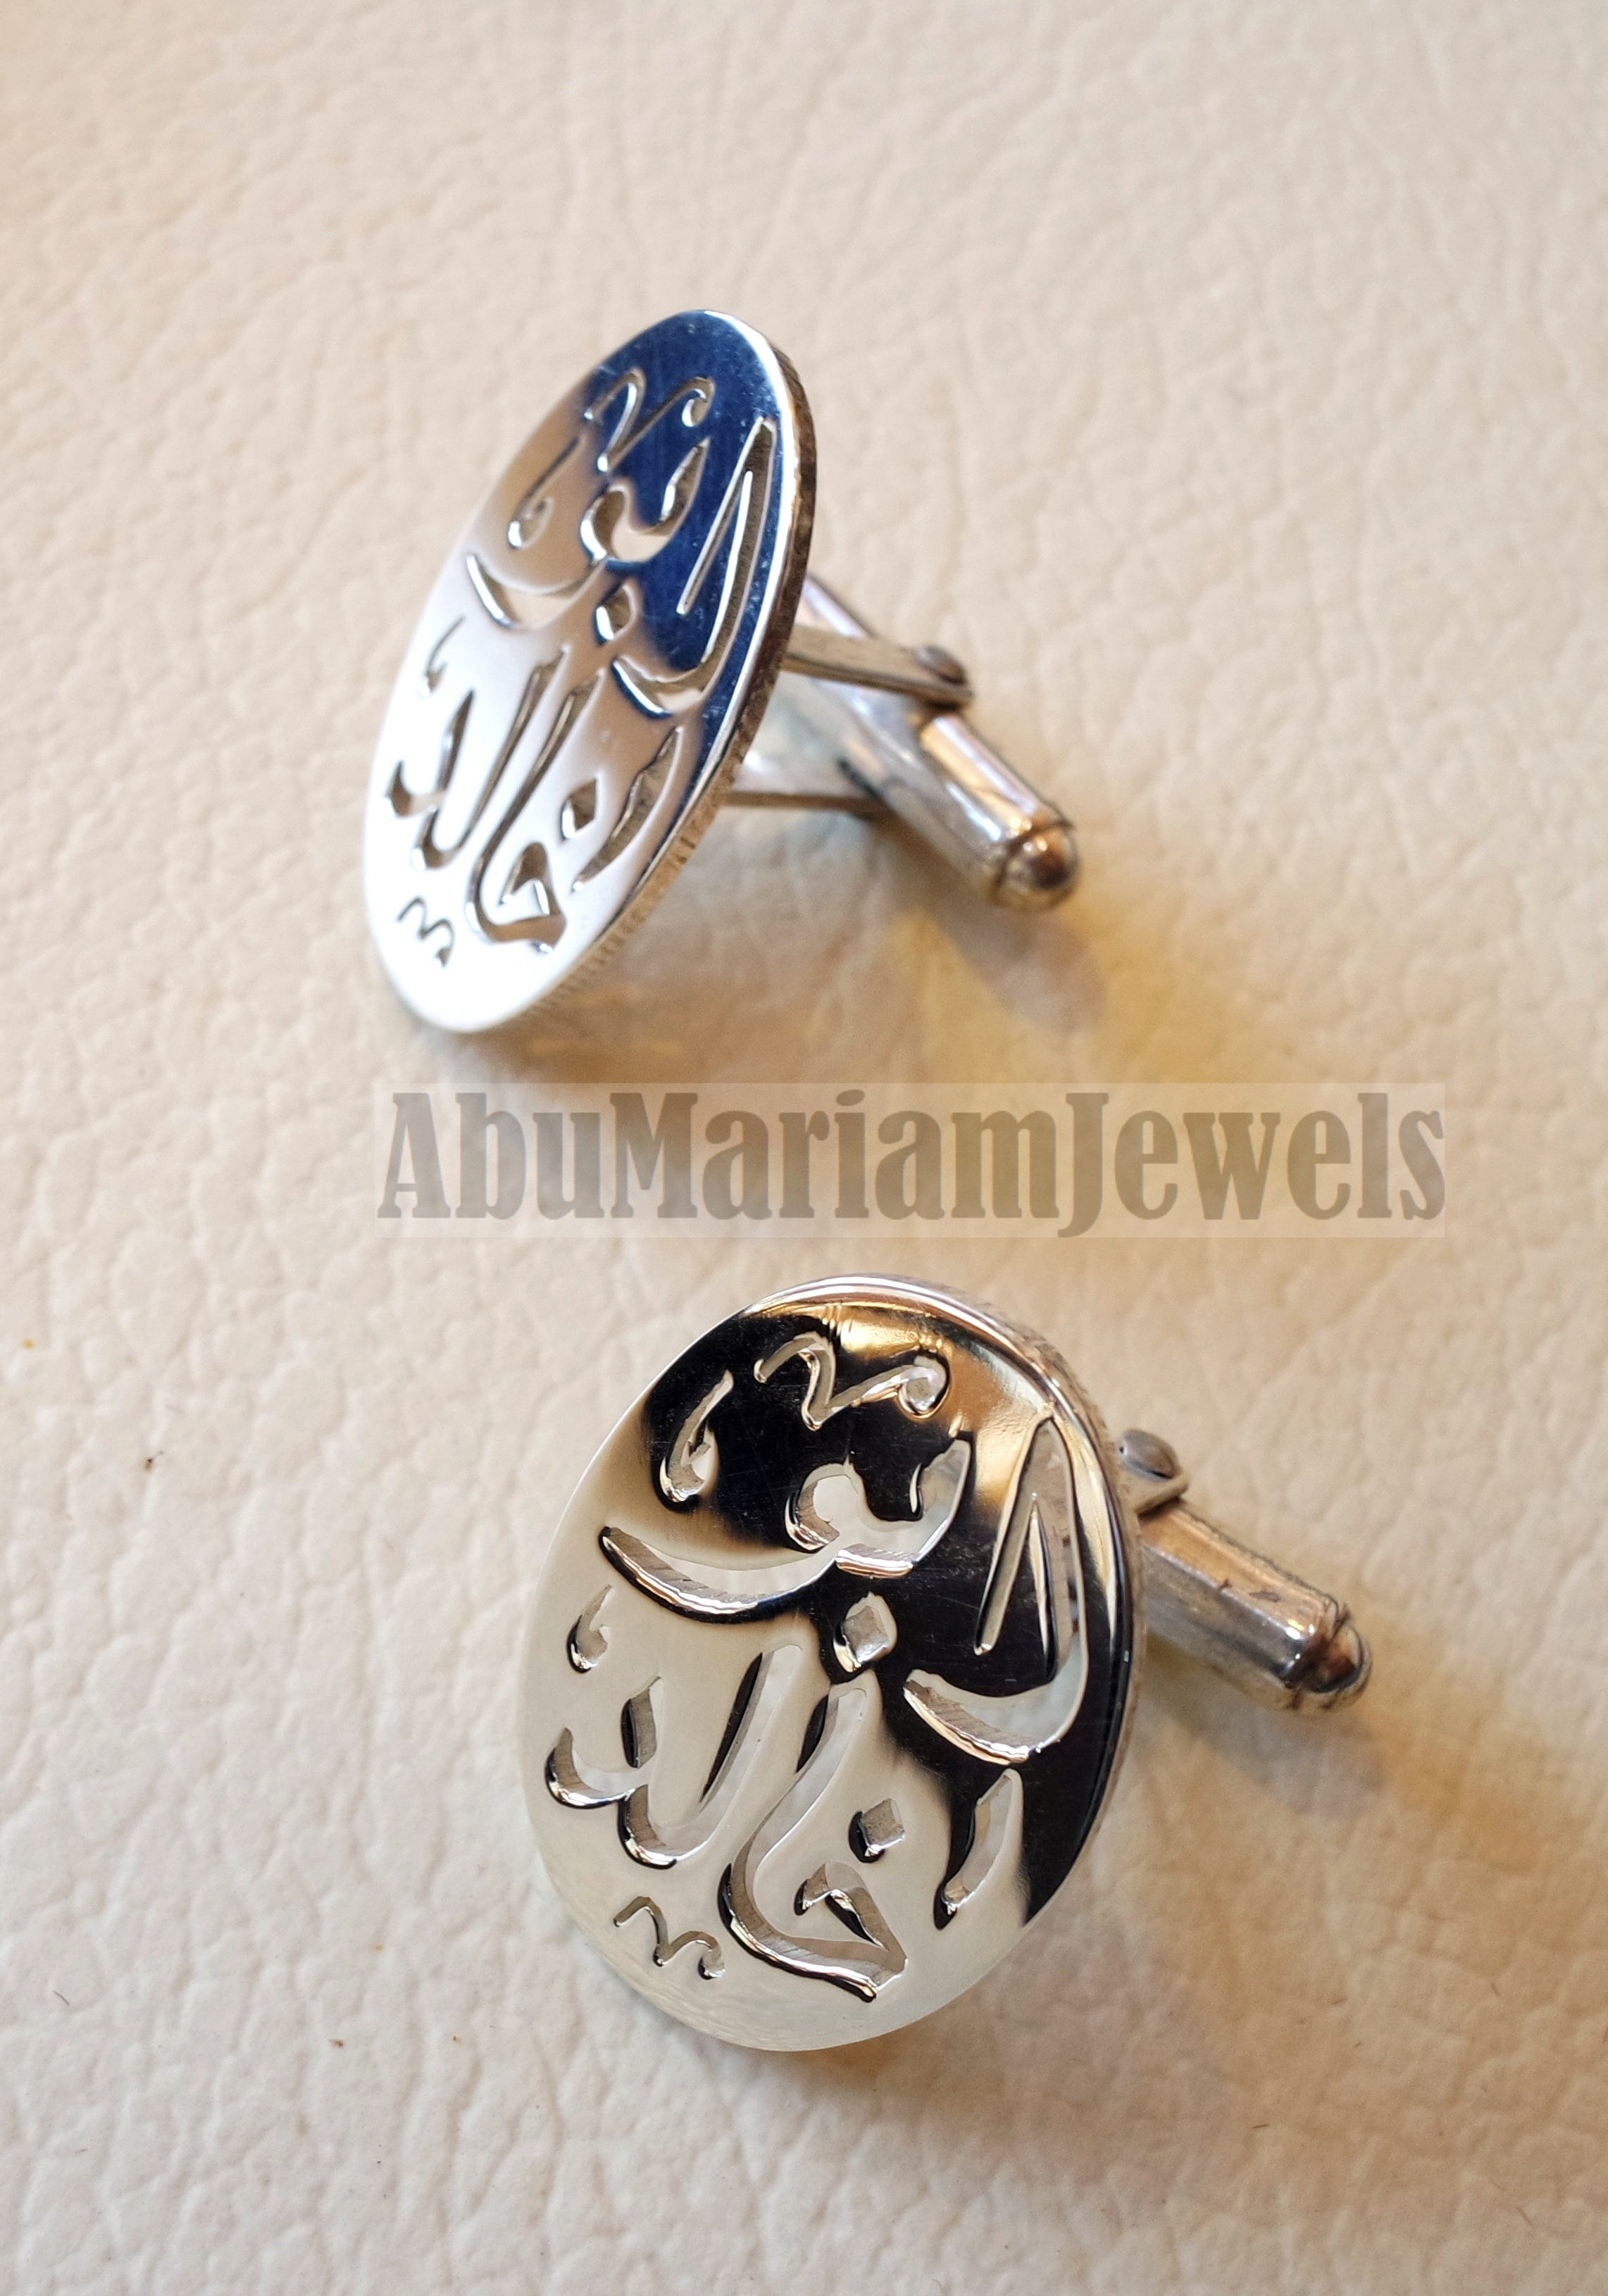 cufflinks , cuflinks name of two words each calligraphy arabic customized any name made to order sterling silver 925 heavy men jewelry cf008